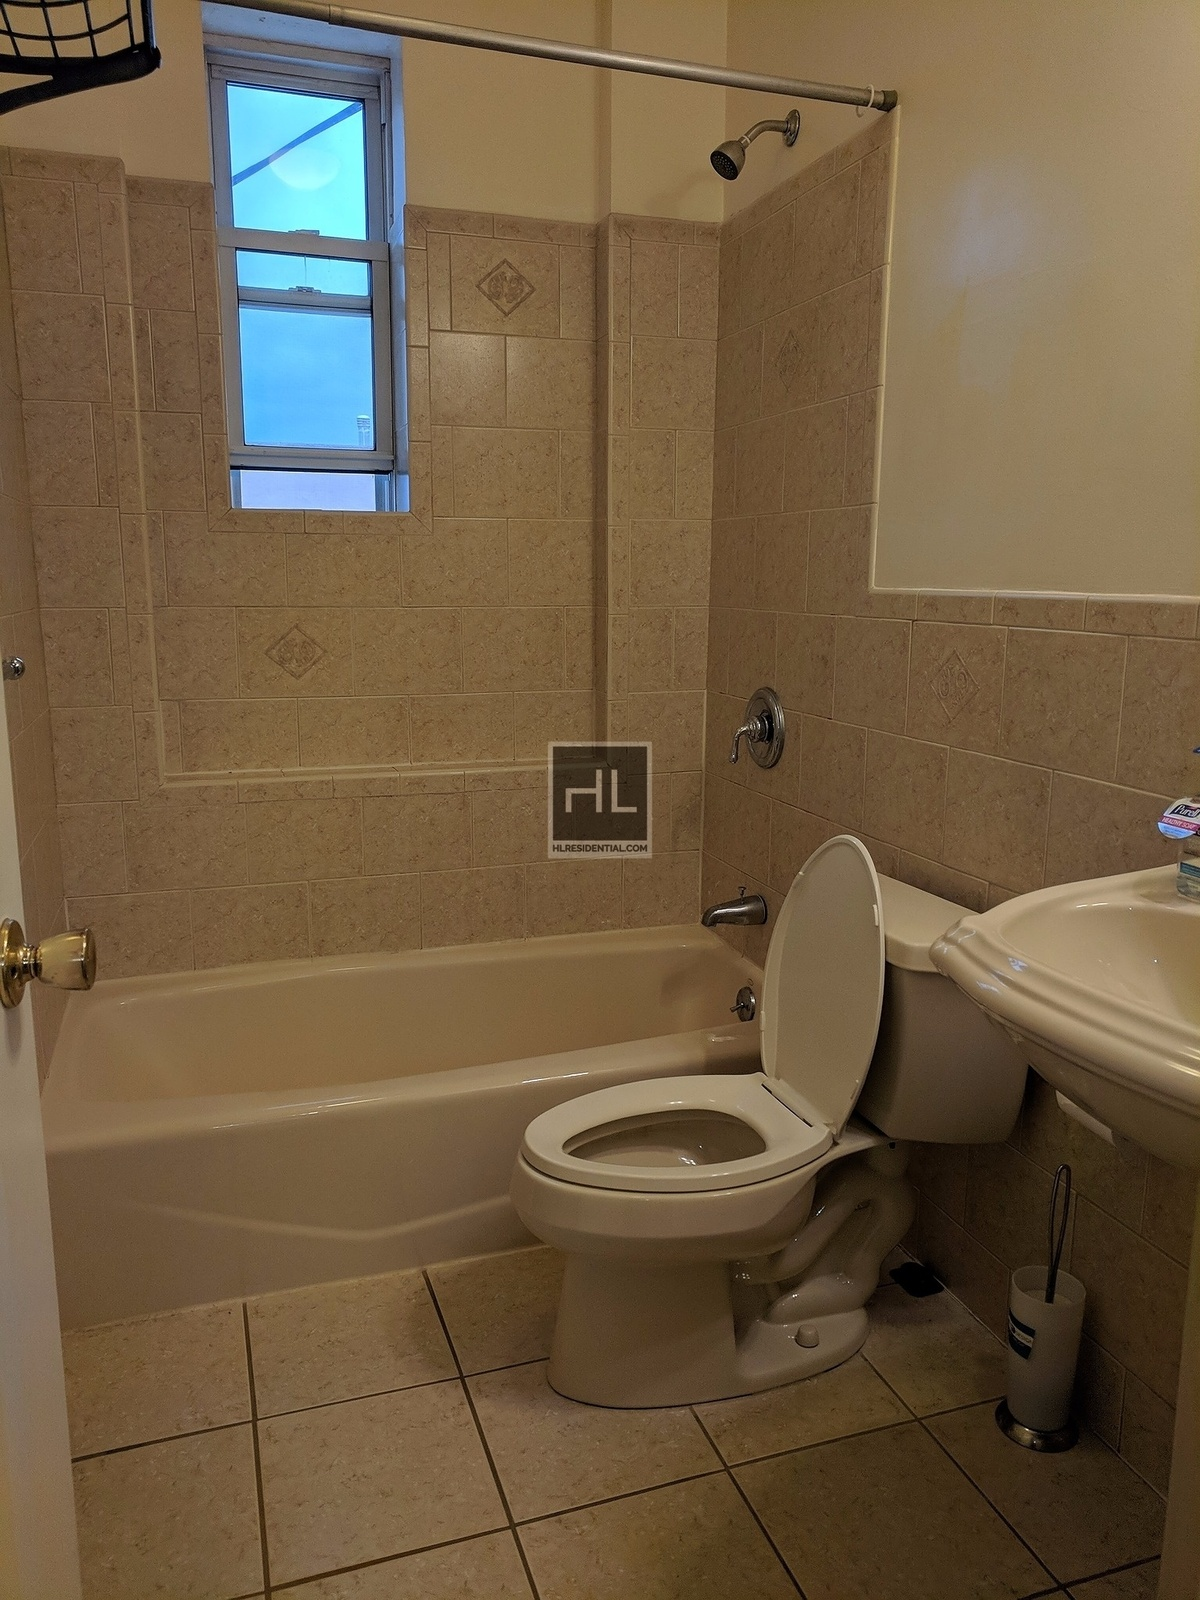 Newly Renovated 2 Bedroom with 1.5 Bath, Separate Kitchen, Stainless ...